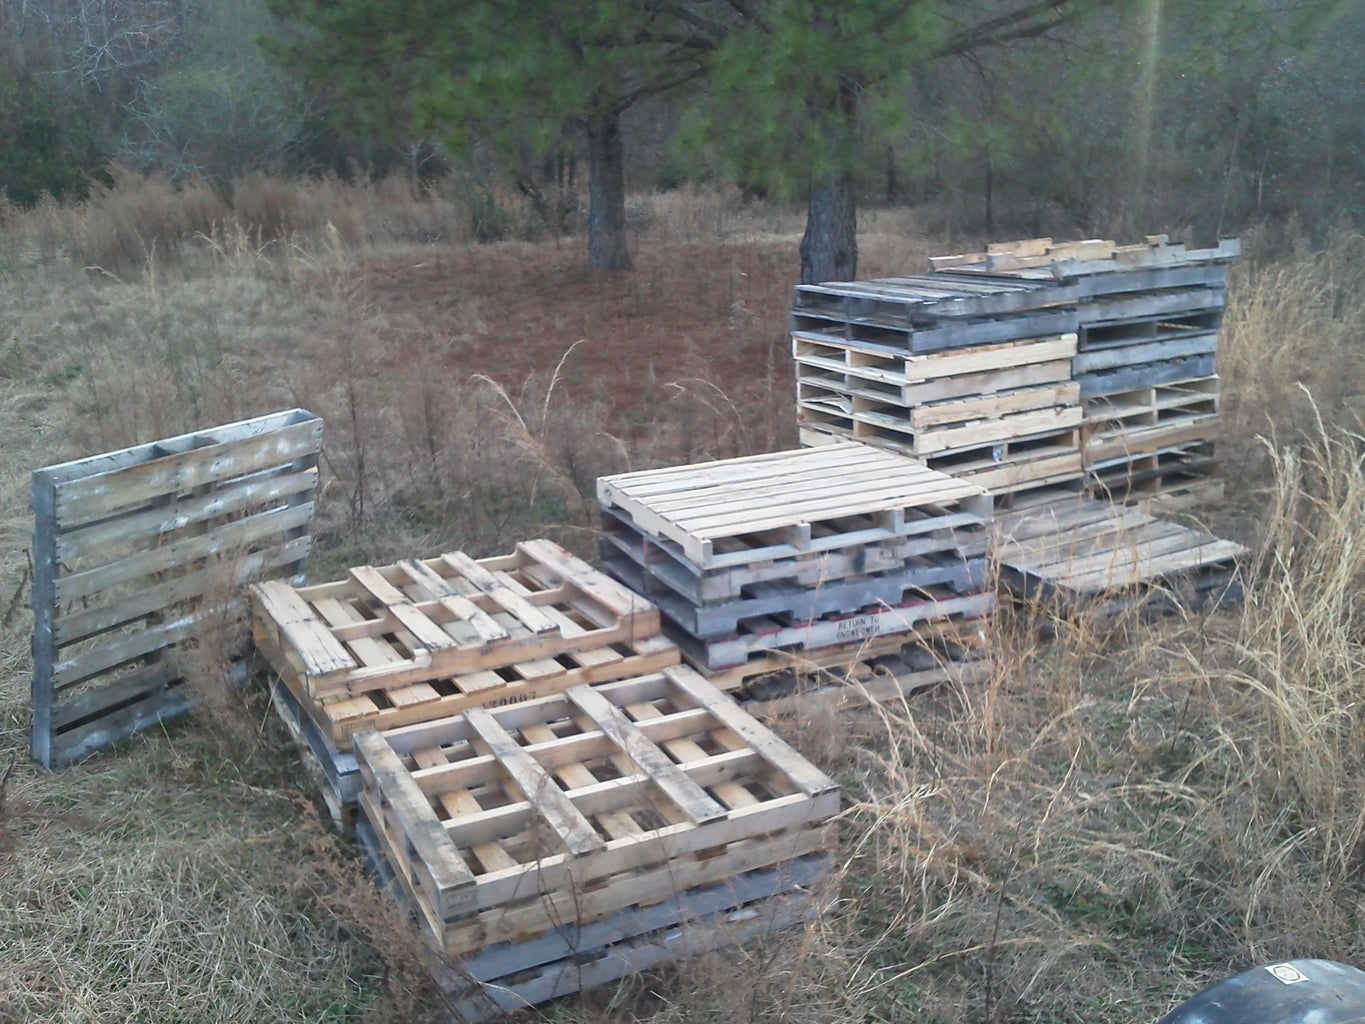 Gather Supplies/Disassemble the Pallet